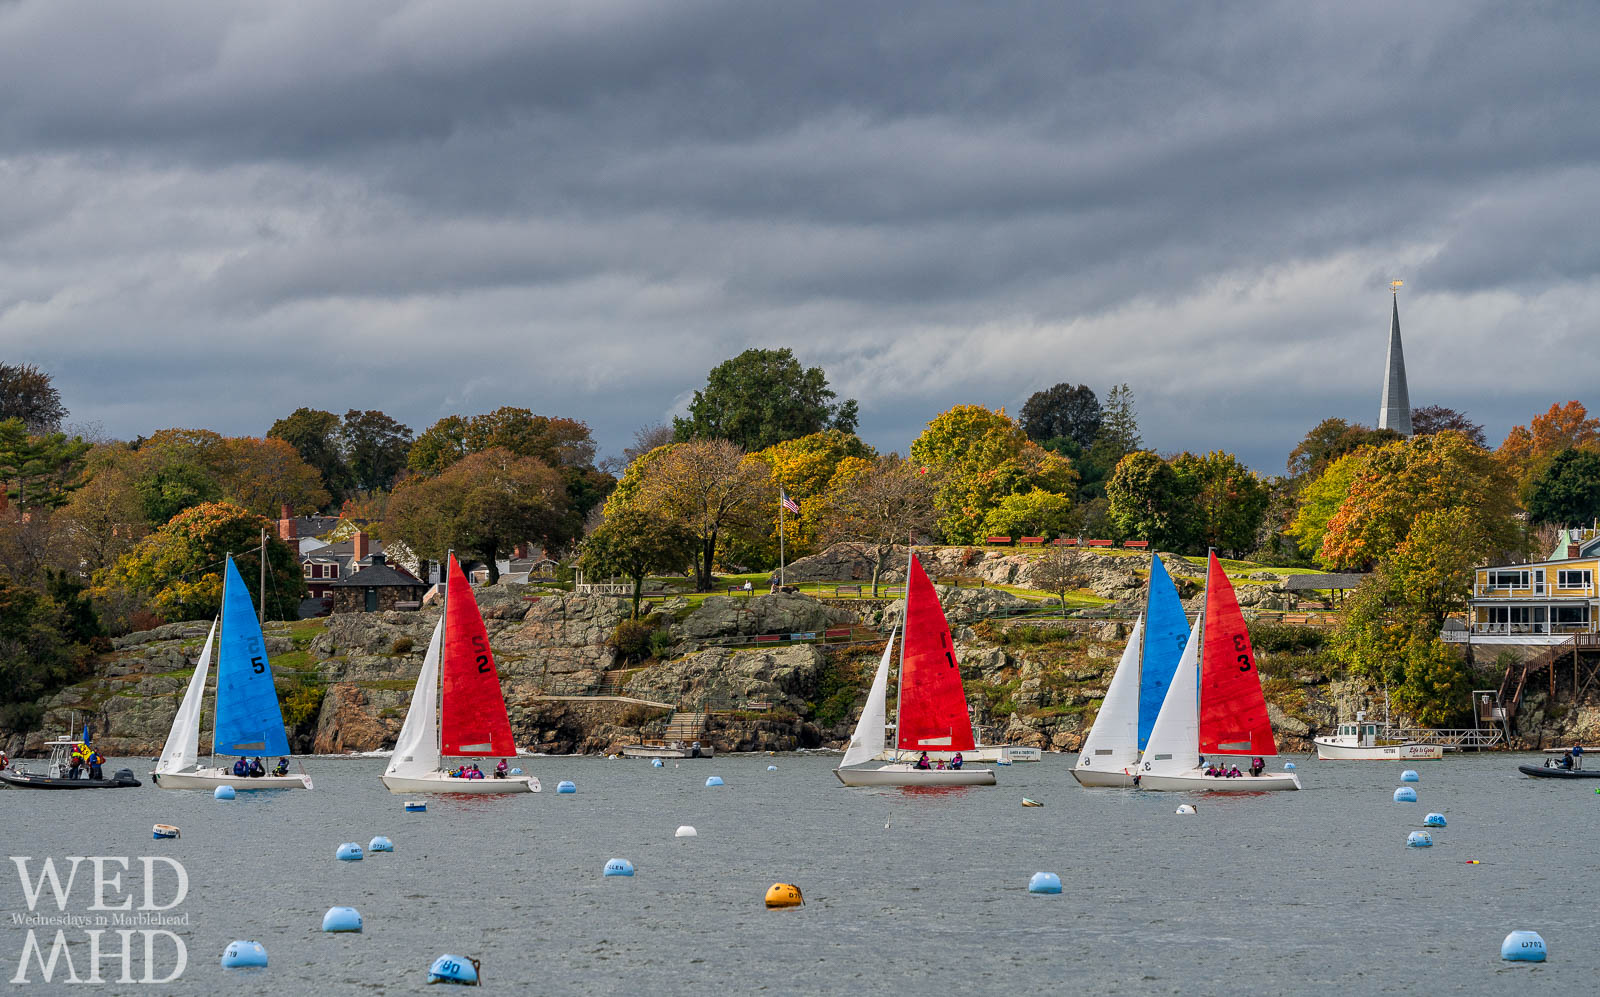 Halloween racing takes place in Marblehead Harbor on a fall day with hints of foliage showing beyond the coloful boats